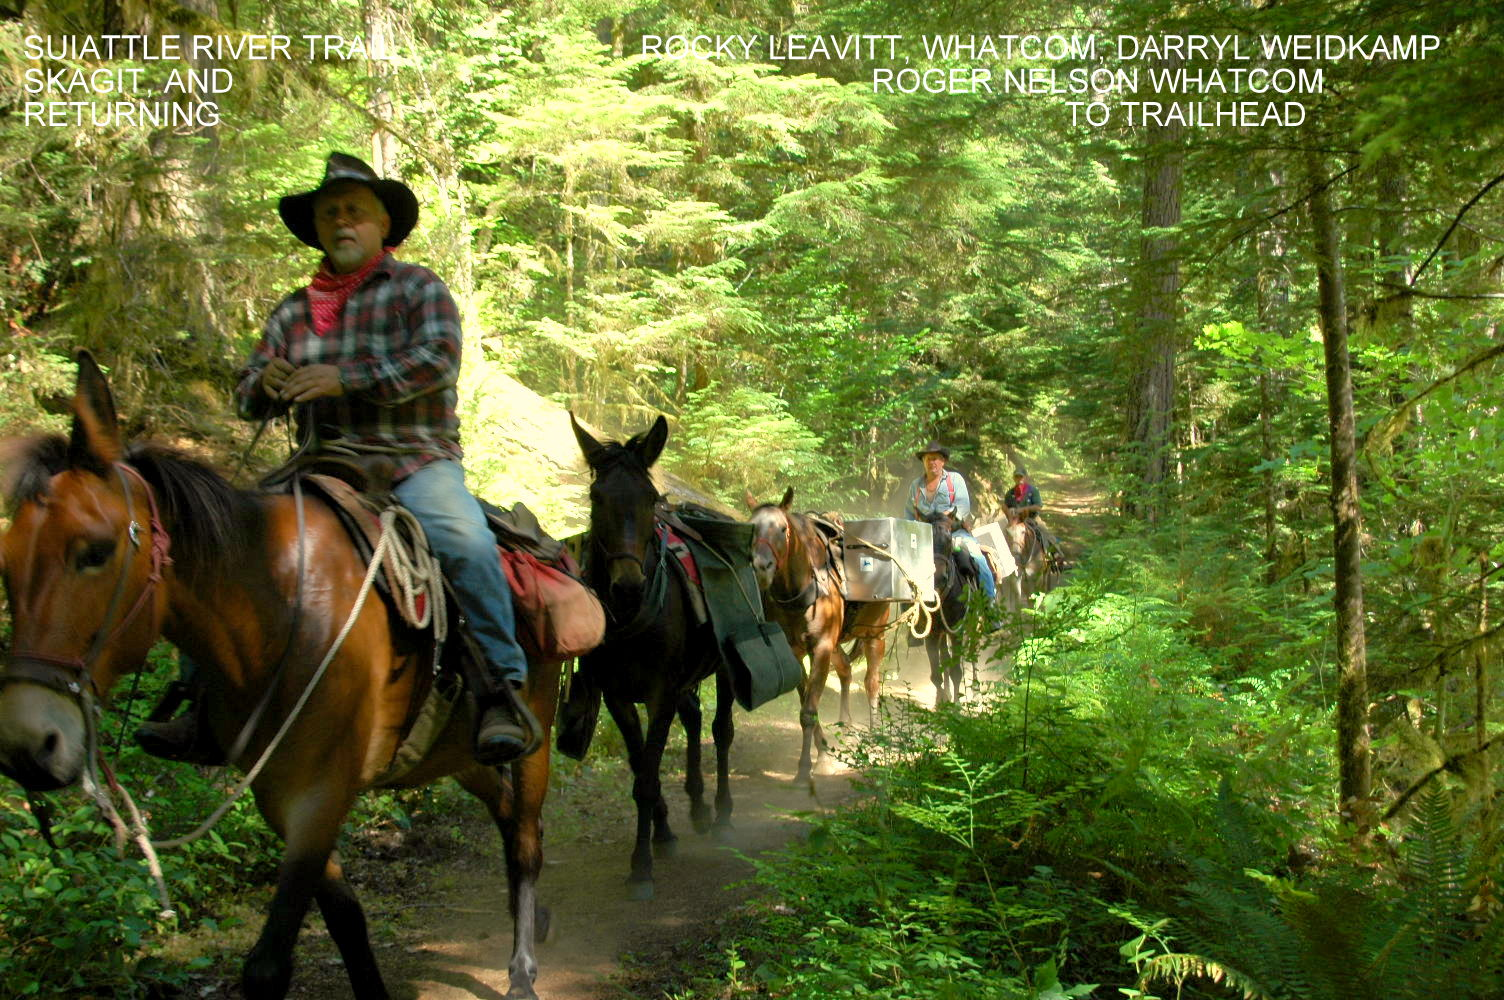 Pack Train for Trail Work